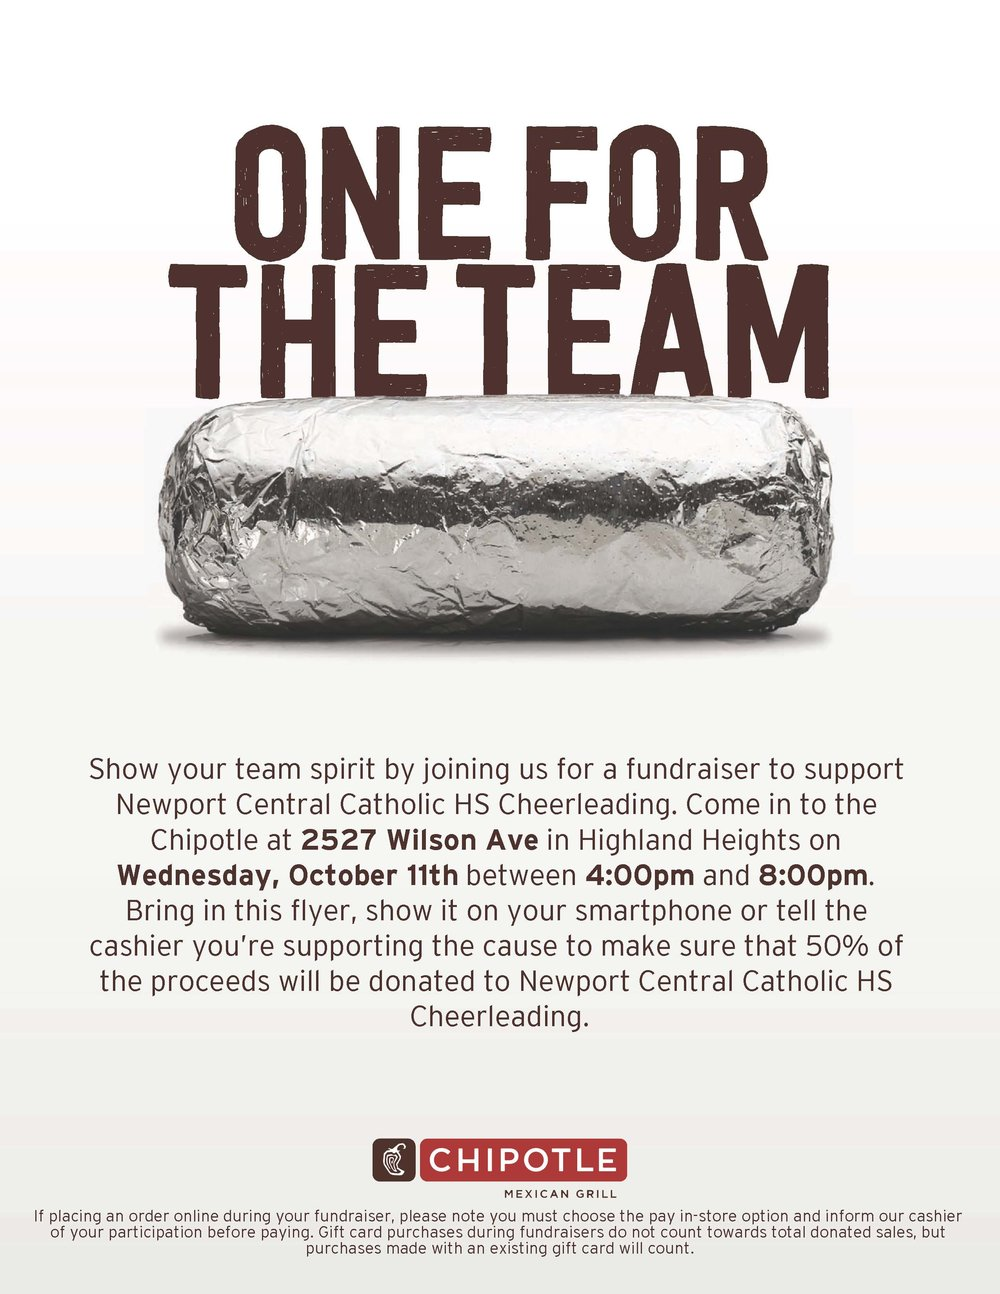 chipotle fundraiser oct 2017.jpg